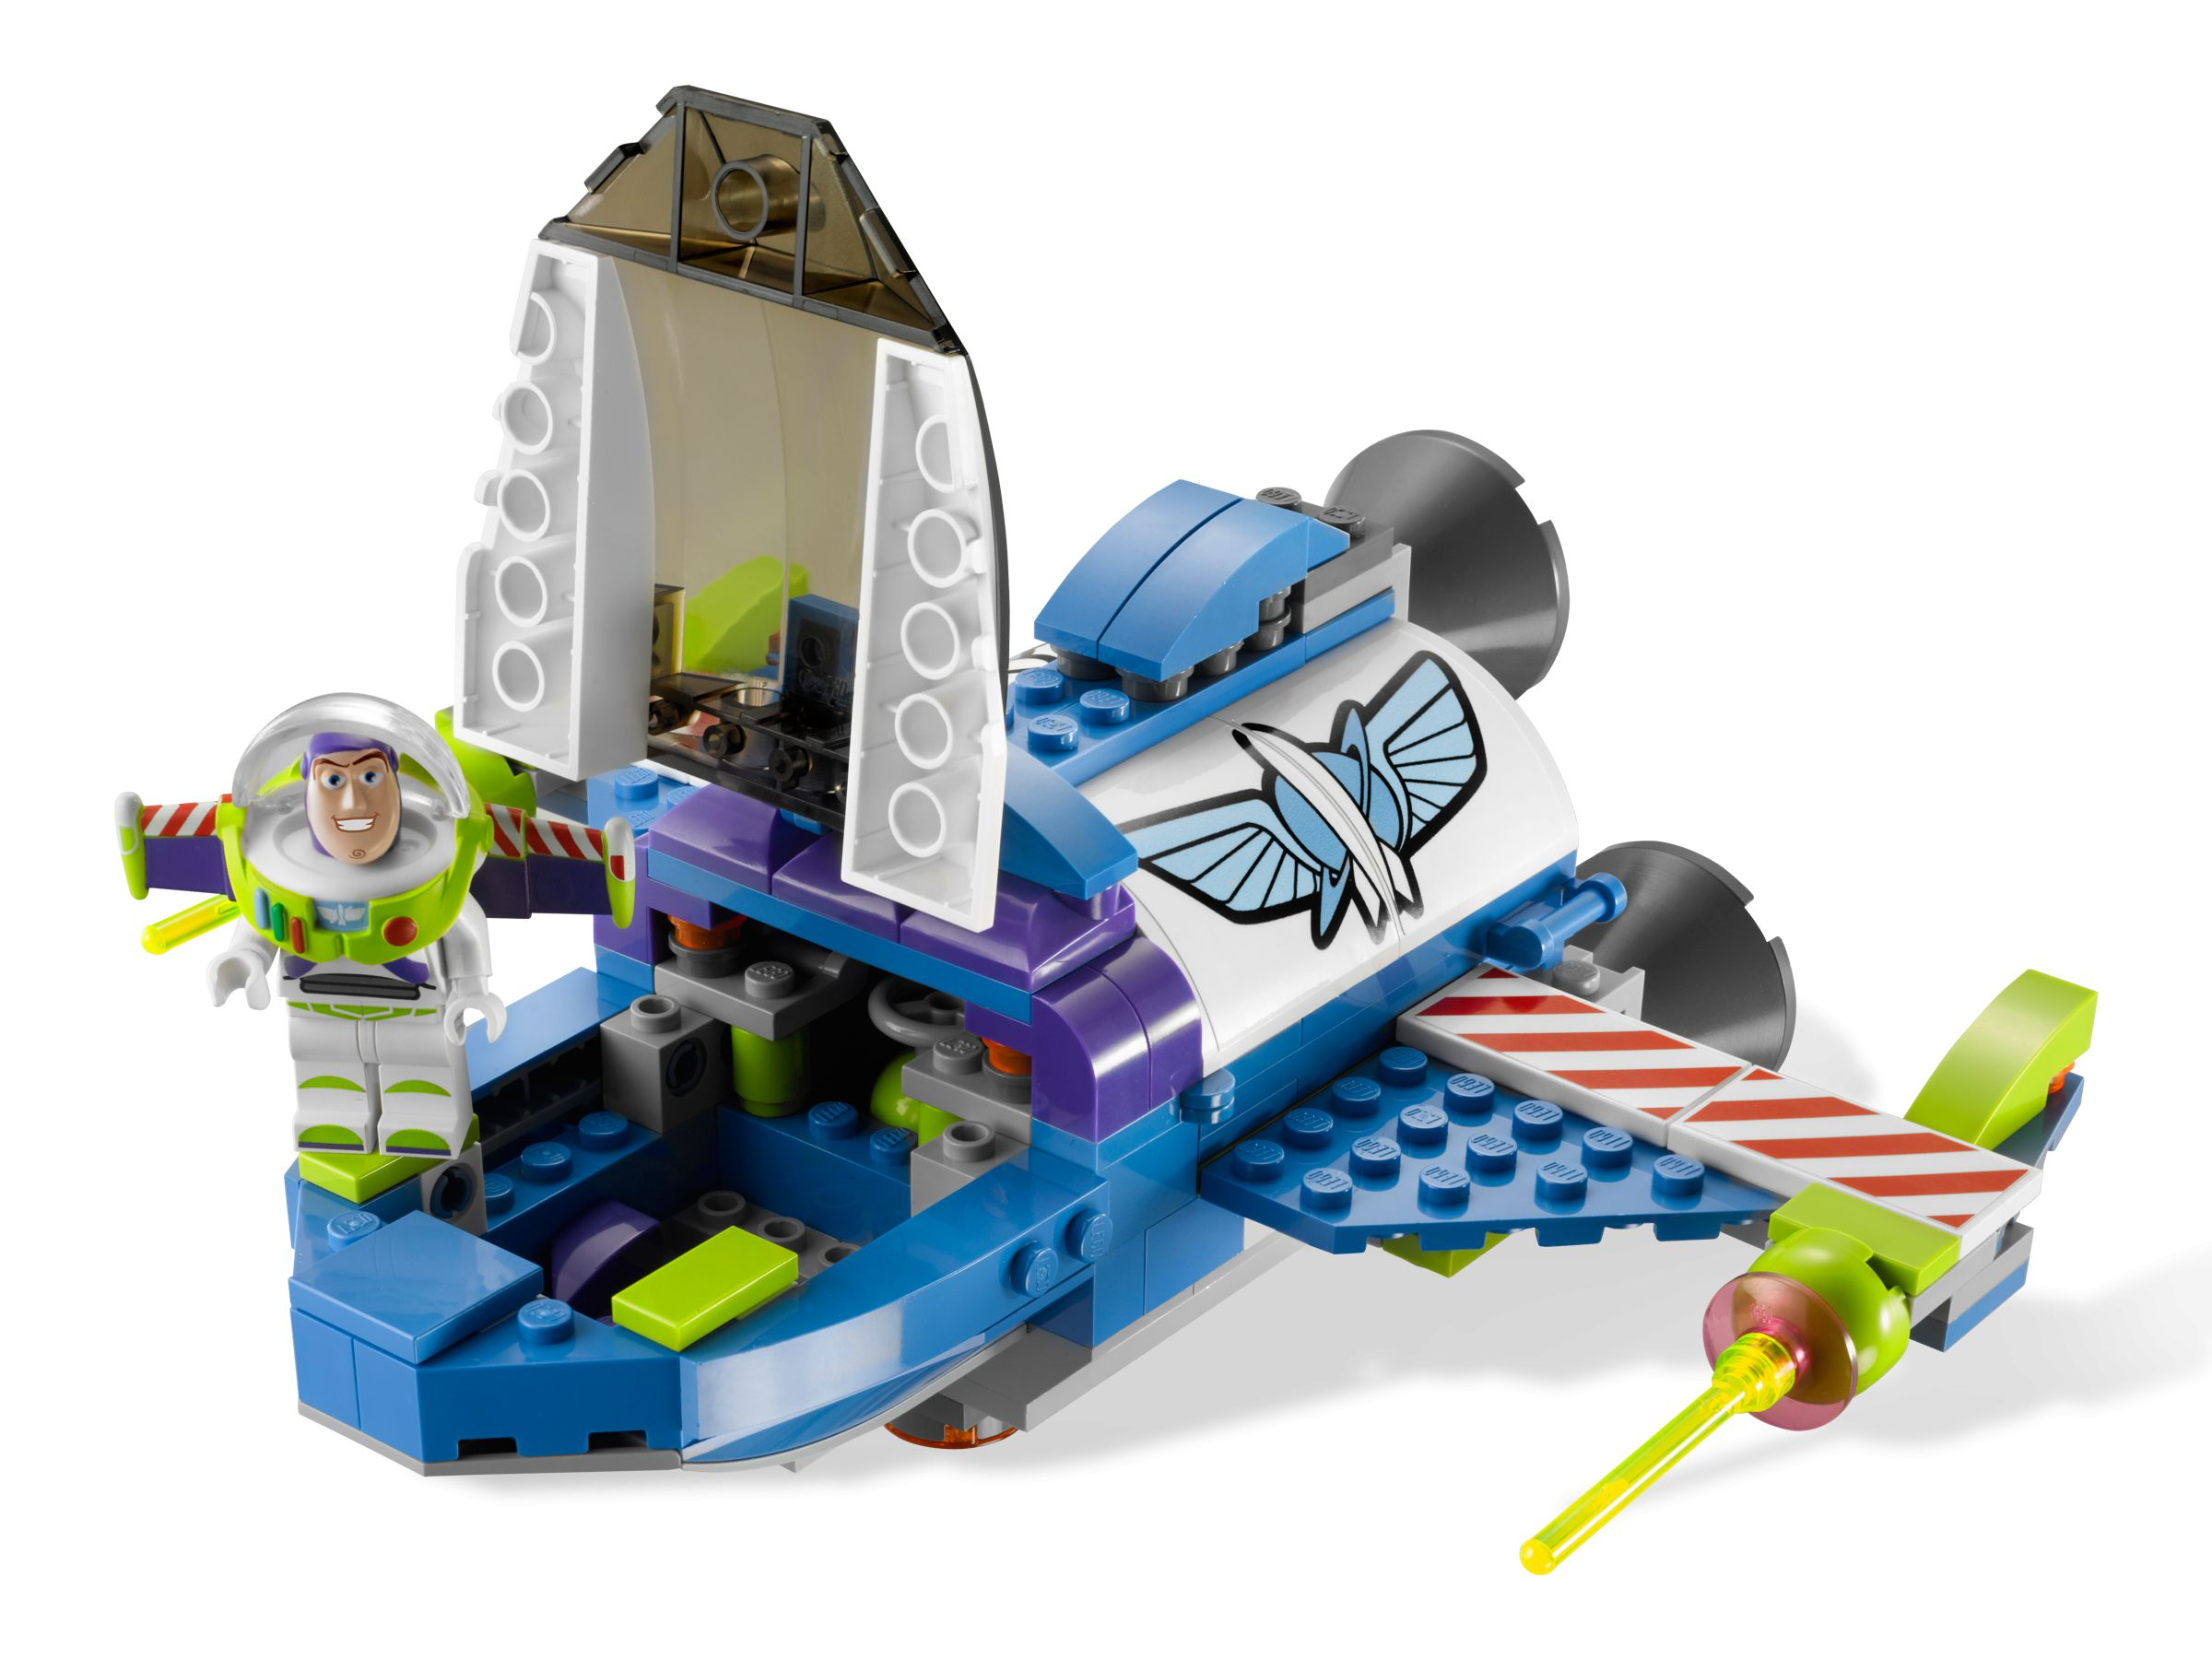 LEGO Toy Story 7593 Buzz's Star Command Spaceship LEGO_7593_alt3.jpg